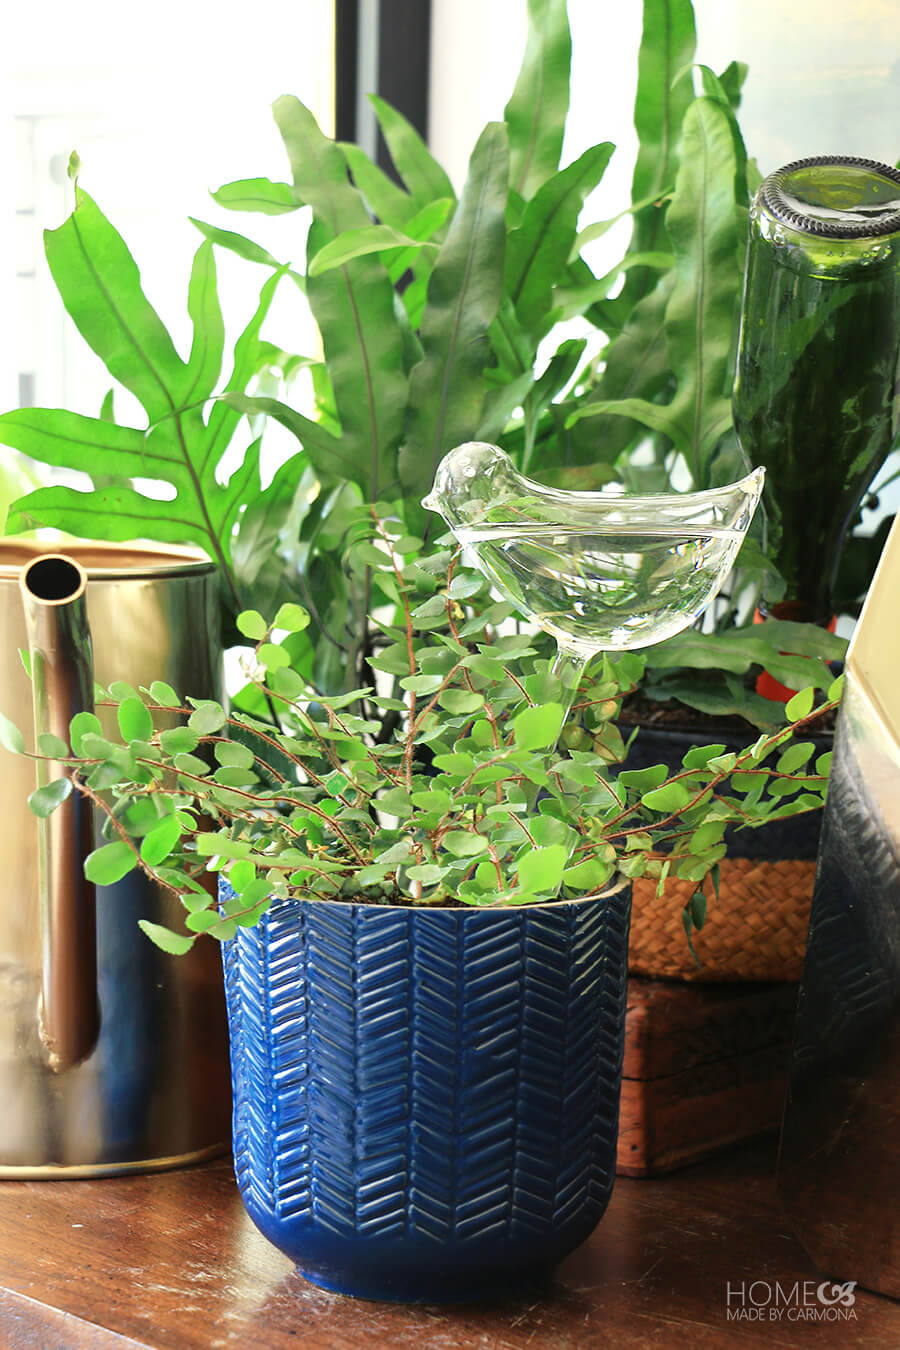 Watering-bulbs-for-plants